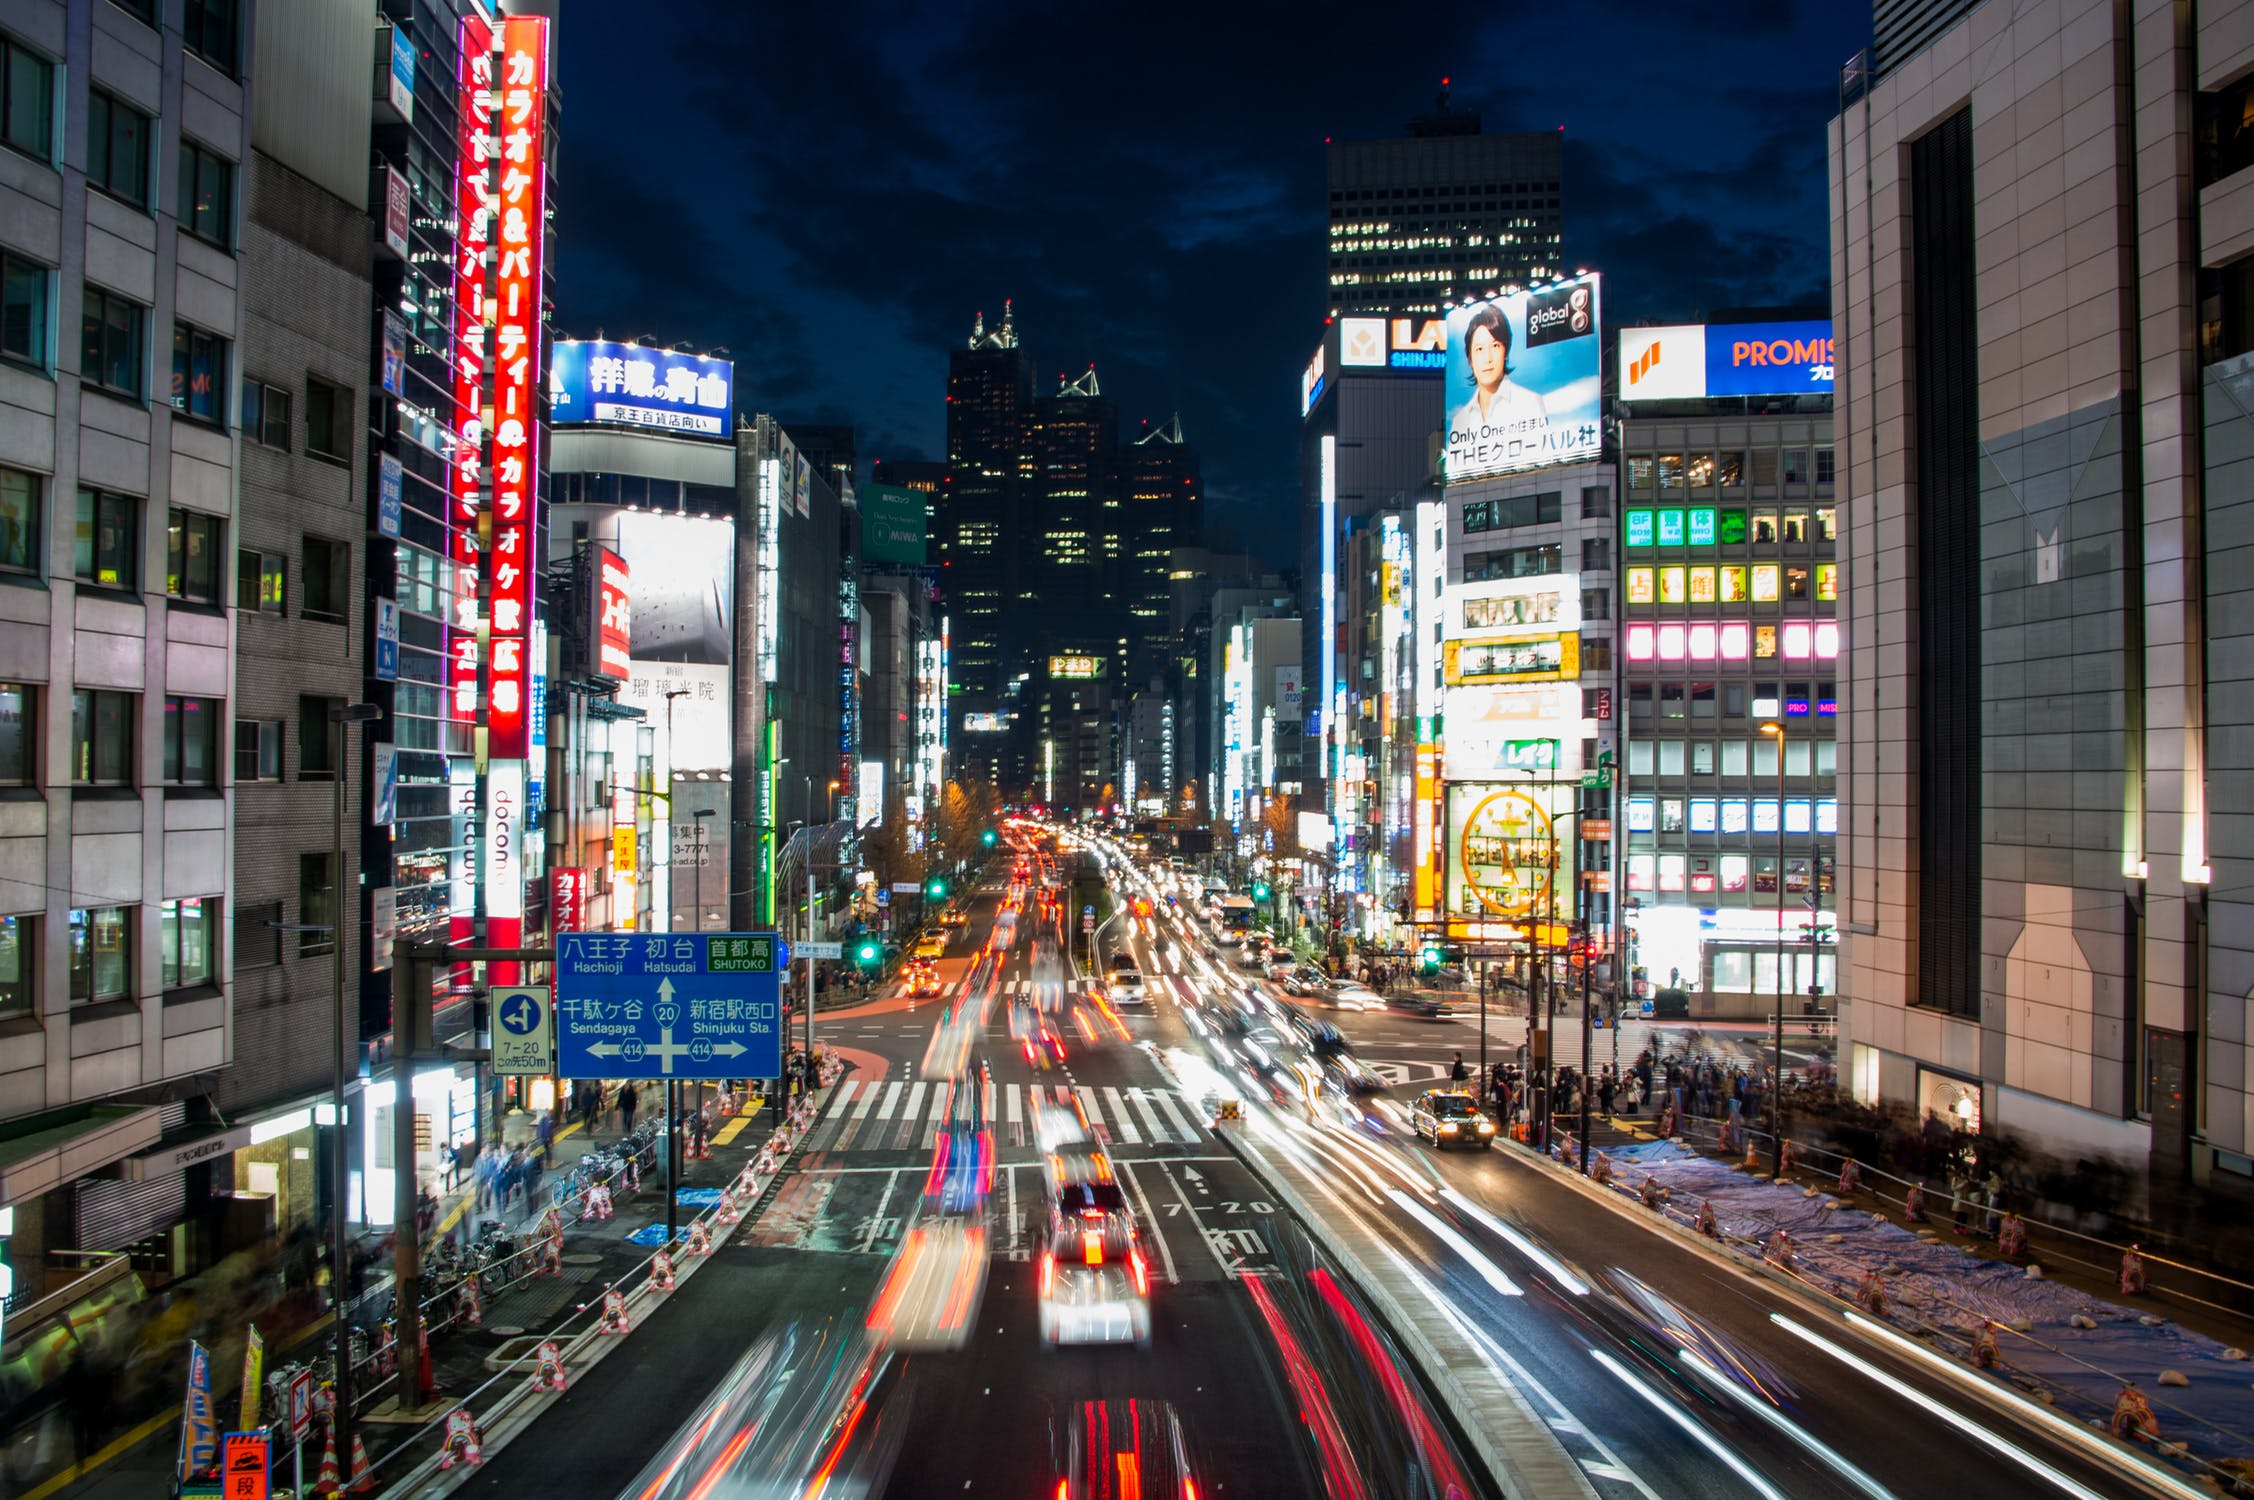 Why Is Japanese Zoning More Liberal Than US Zoning?